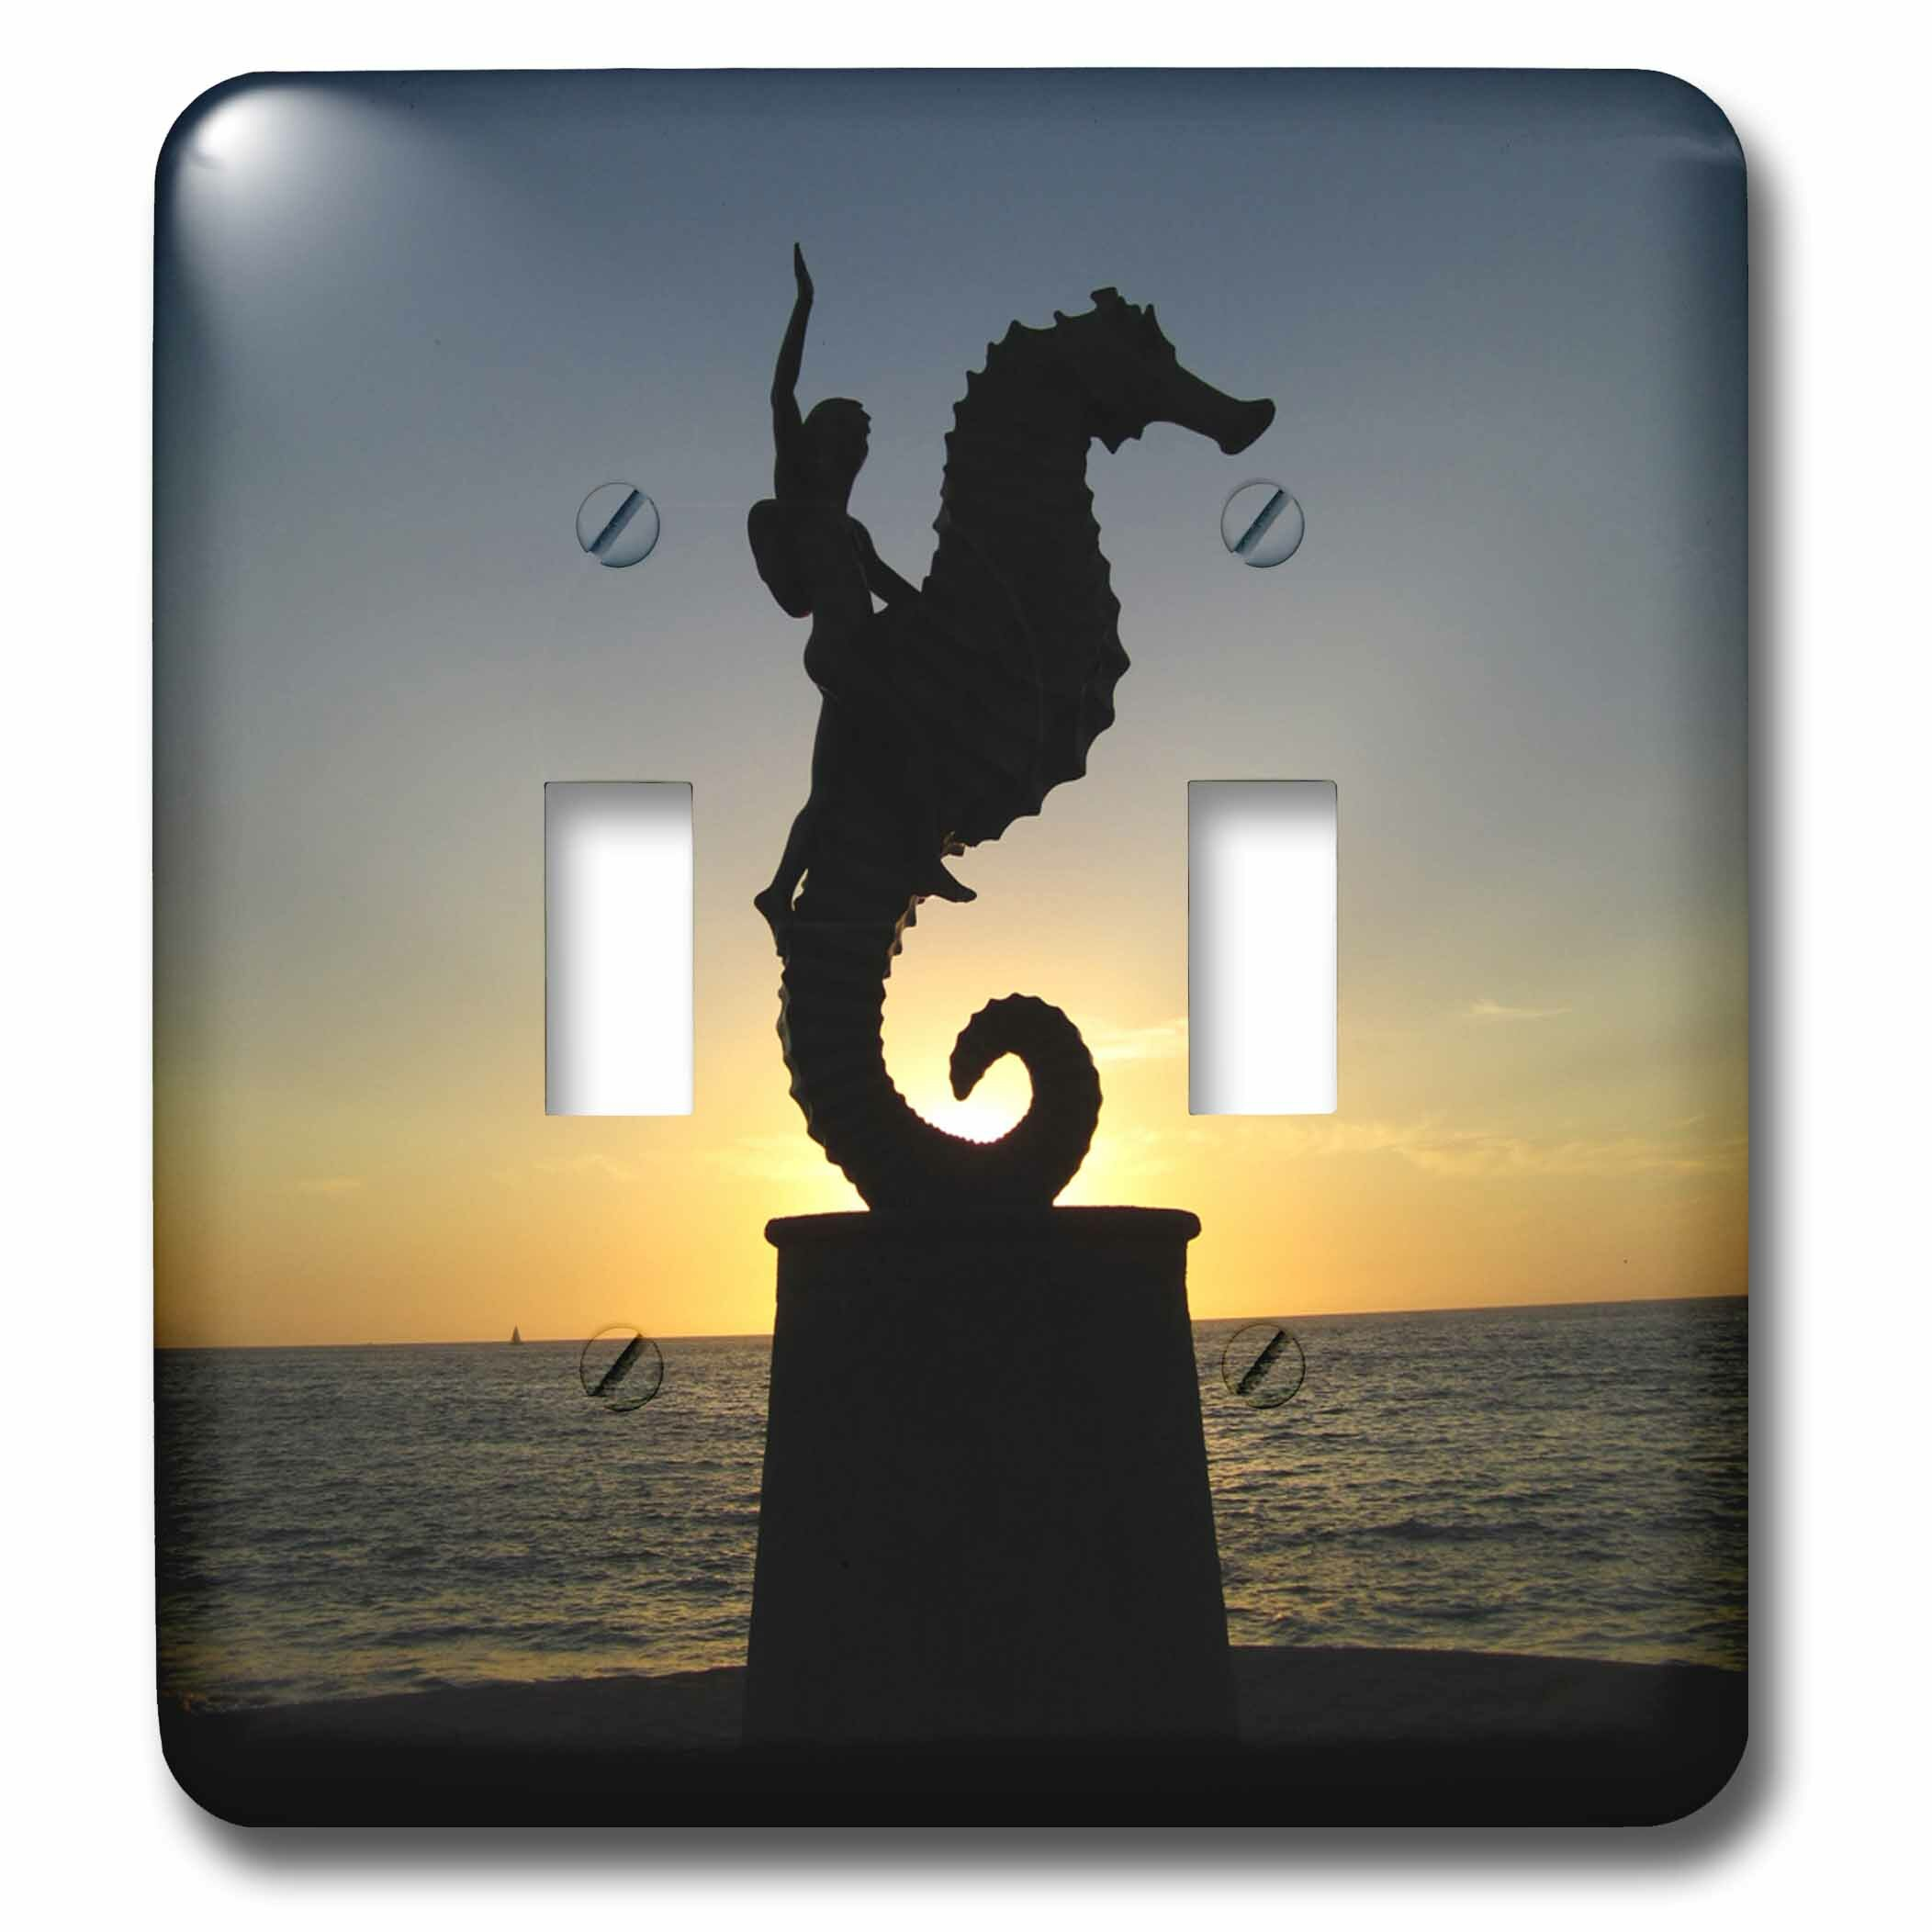 3drose Puerto Vallarta Malecon Boy On Seahorse Statue Silhouetted Against Sunset 2 Gang Toggle Light Switch Wall Plate Wayfair